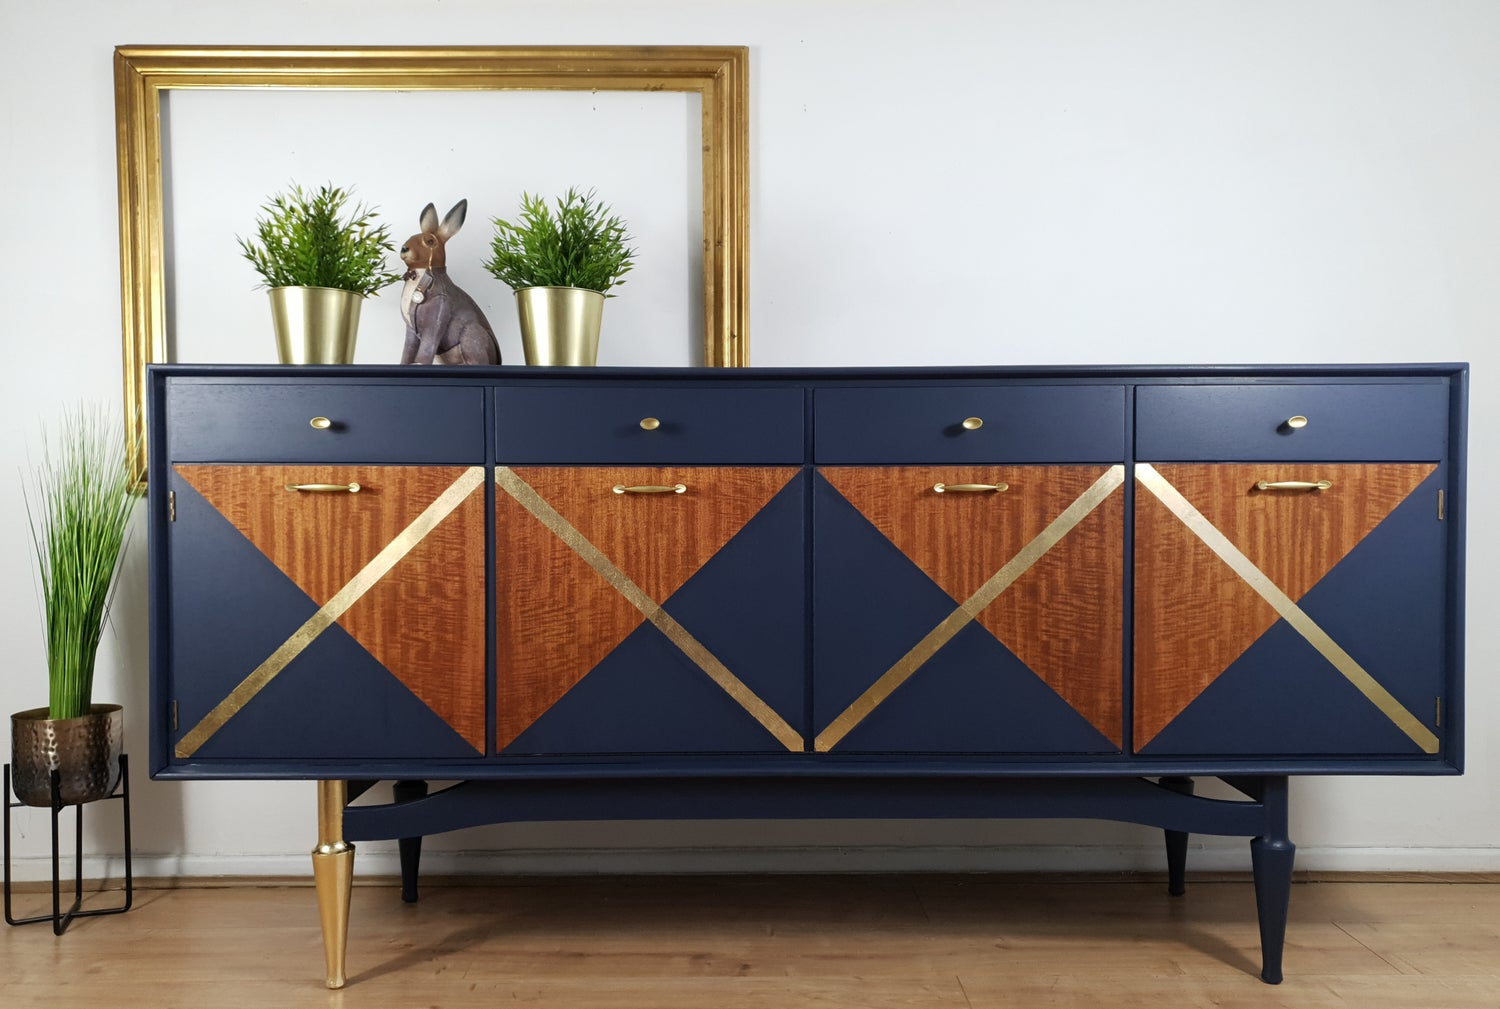 Image of Greaves & Thomas sideboard in Navy & gold